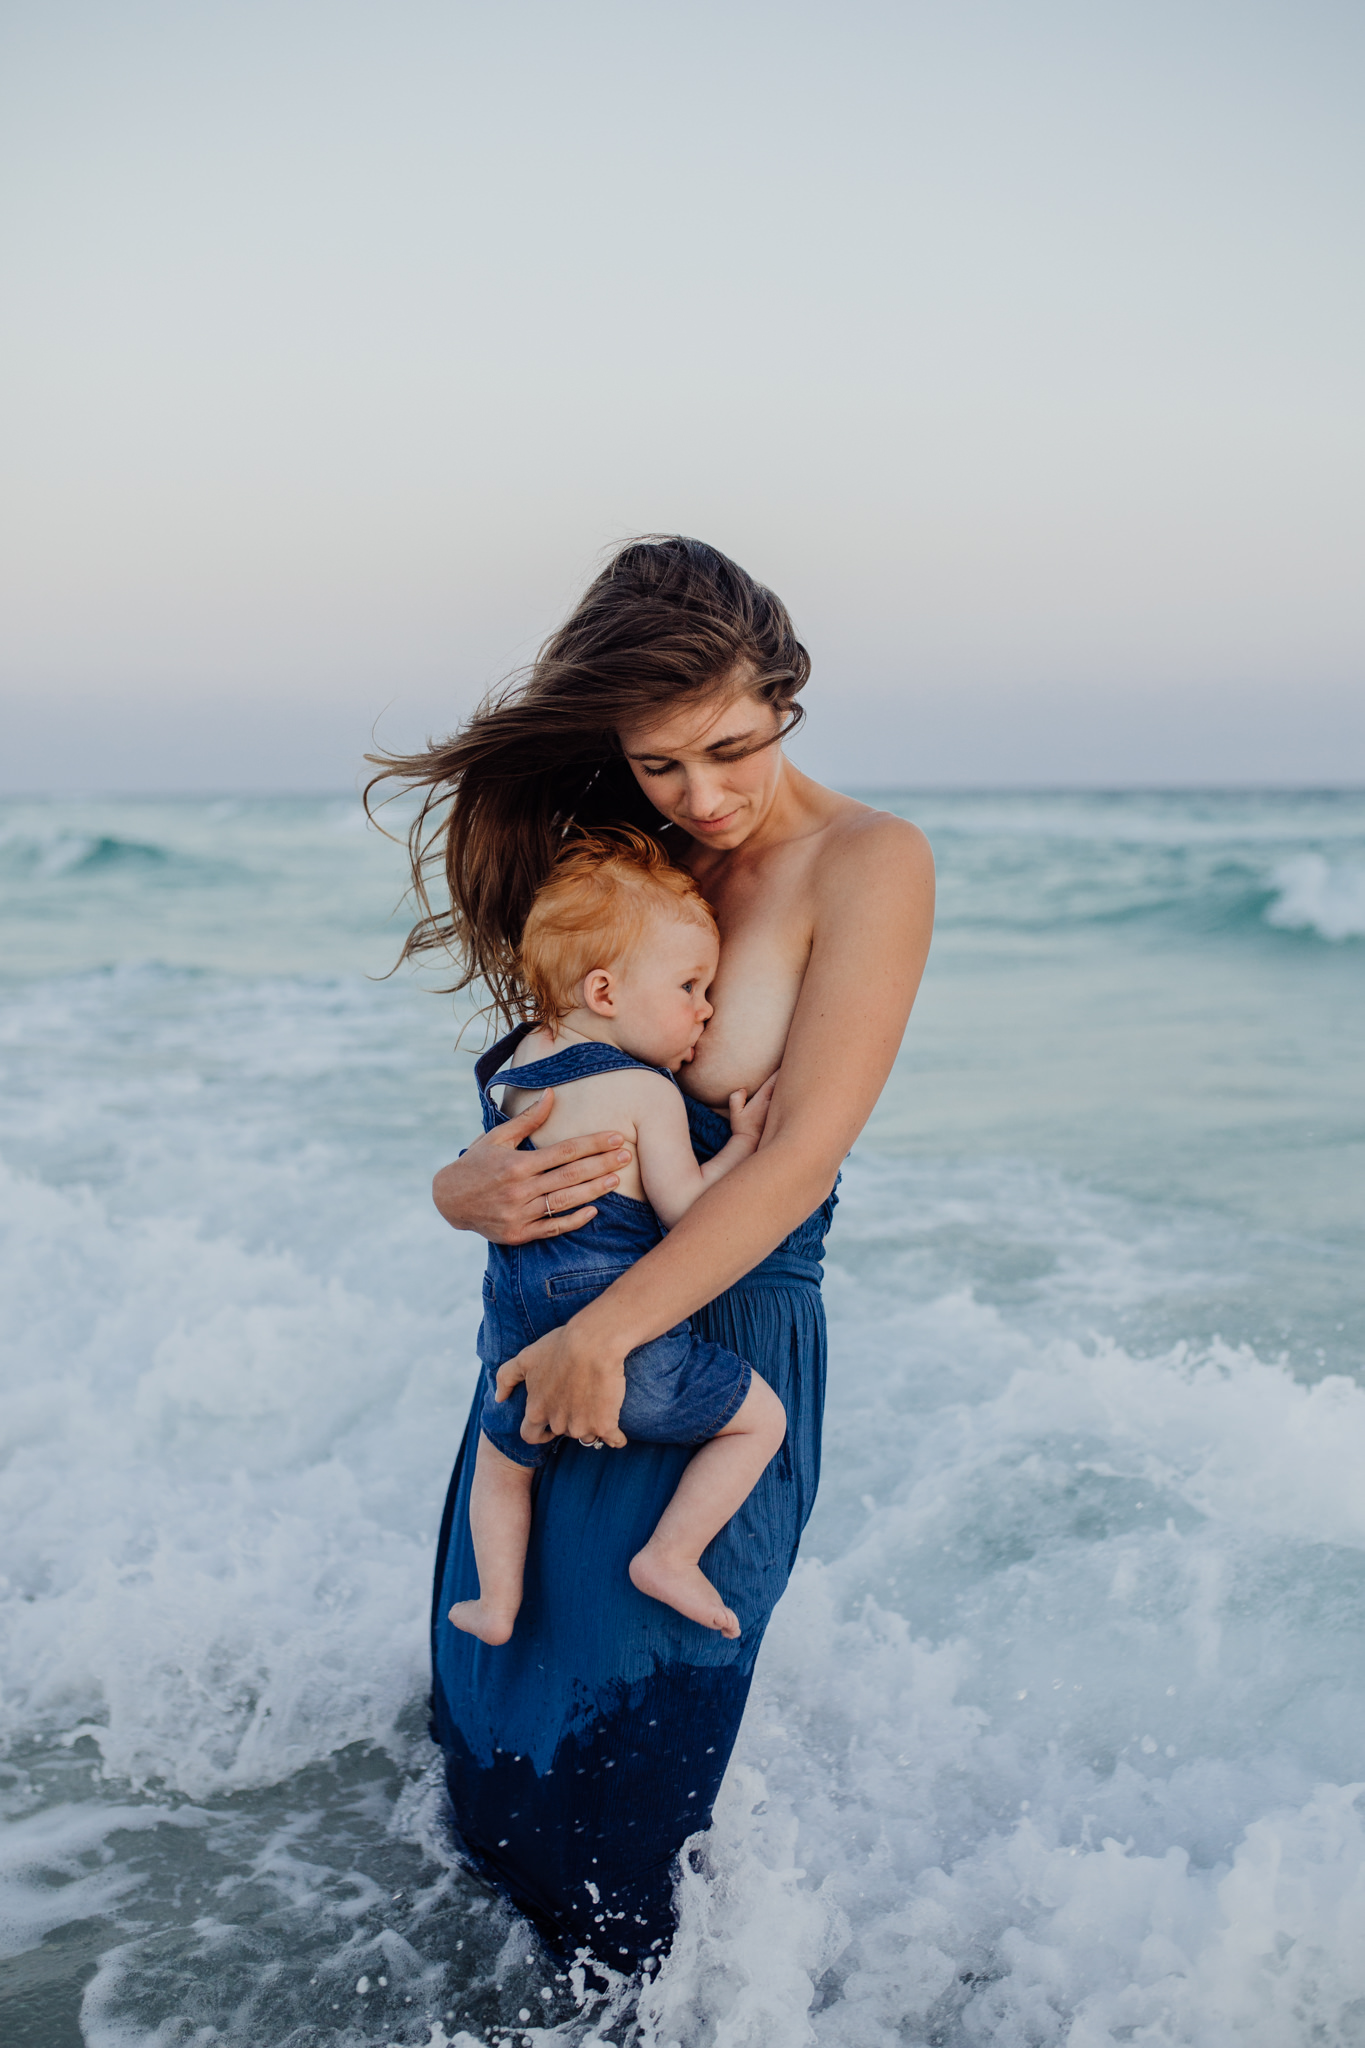 A woman breastfeeding her newborn while standing in the ocean